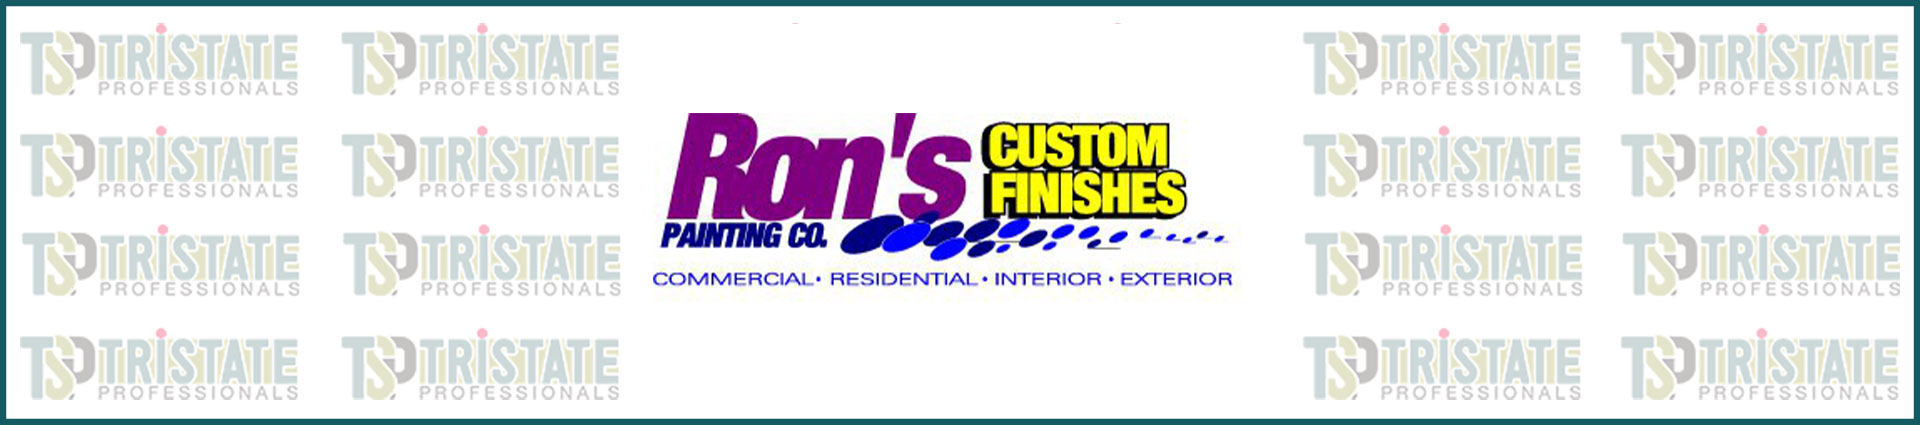 Ron's Custom Finishes Tristate Professionals